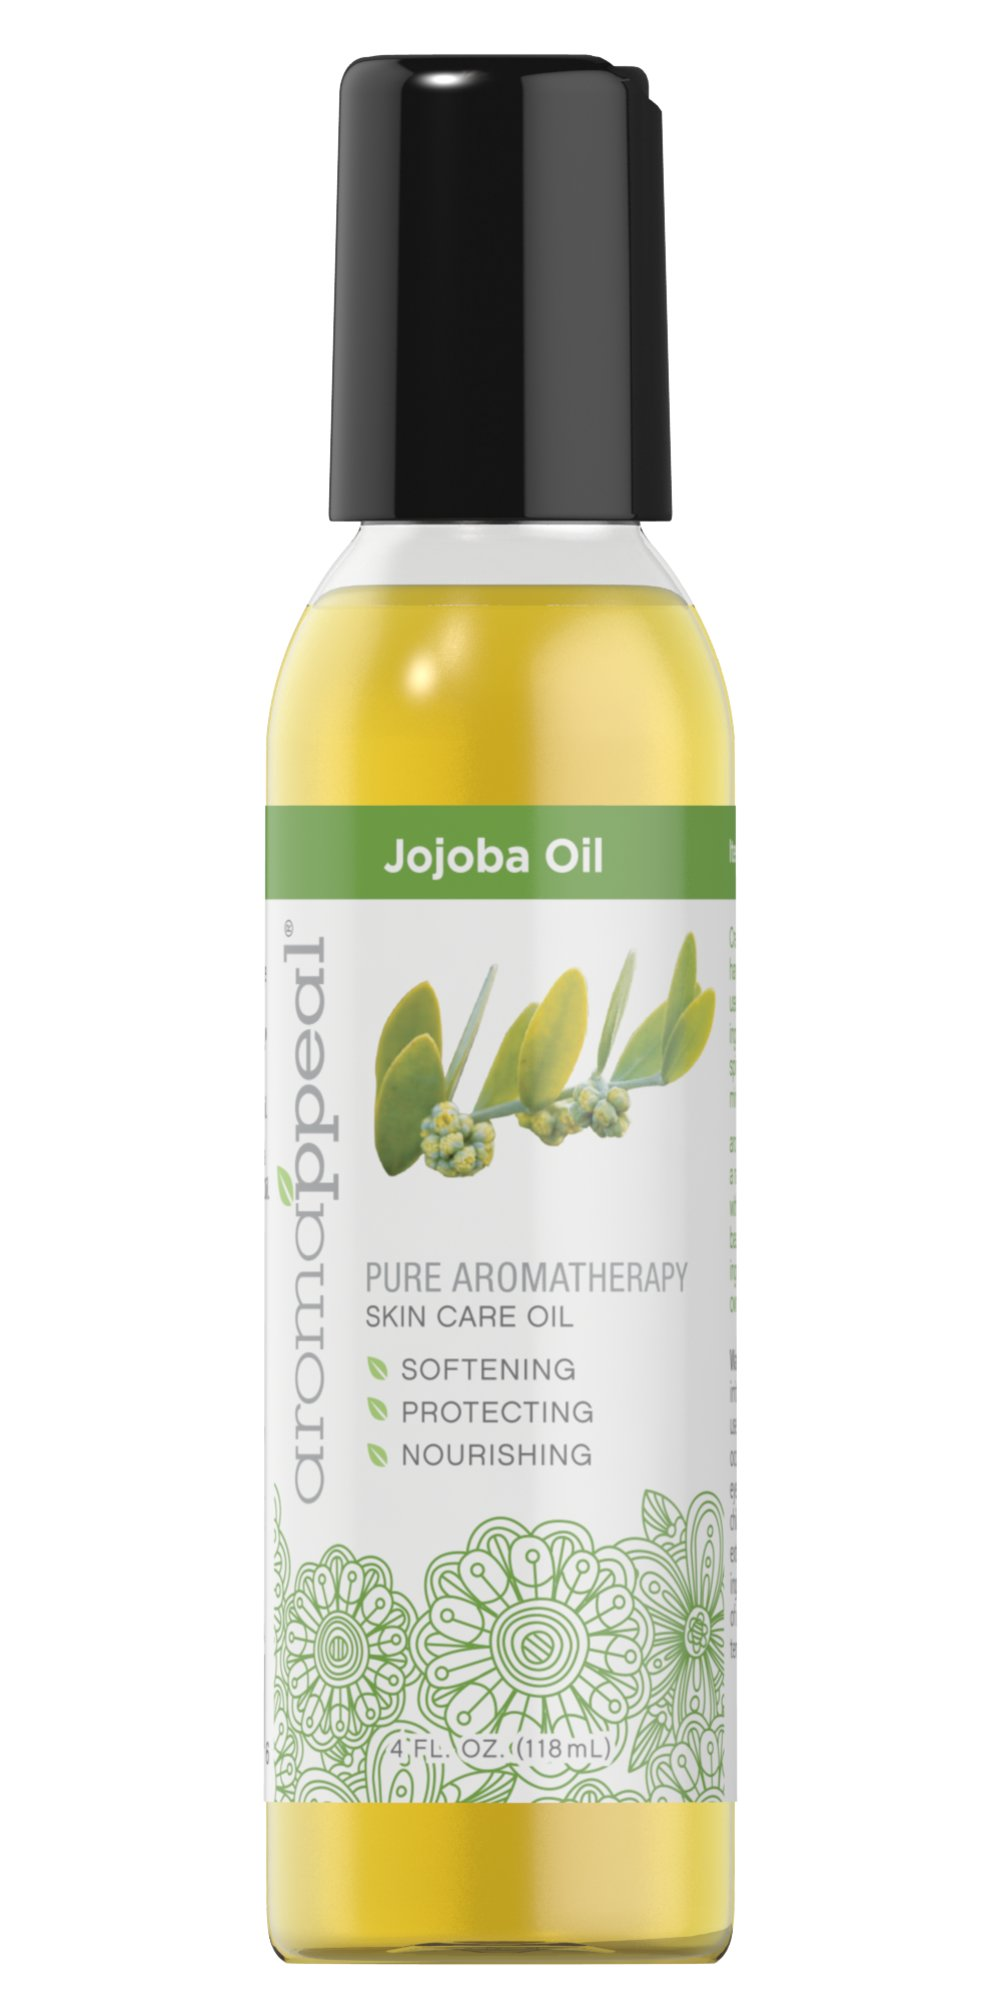 Jojoba Oil <p>Created to bring you harmony, Aromappeal™ uses the most balanced ingredients to lift your spirits and soothe your mind.</p><p>Aromappeal™ Jojoba Oil is a natural vegetable oil with a neutral aroma. This base makes an ideal ingredient to create your own aroma recipe.</p> 4 oz Oil  $17.99